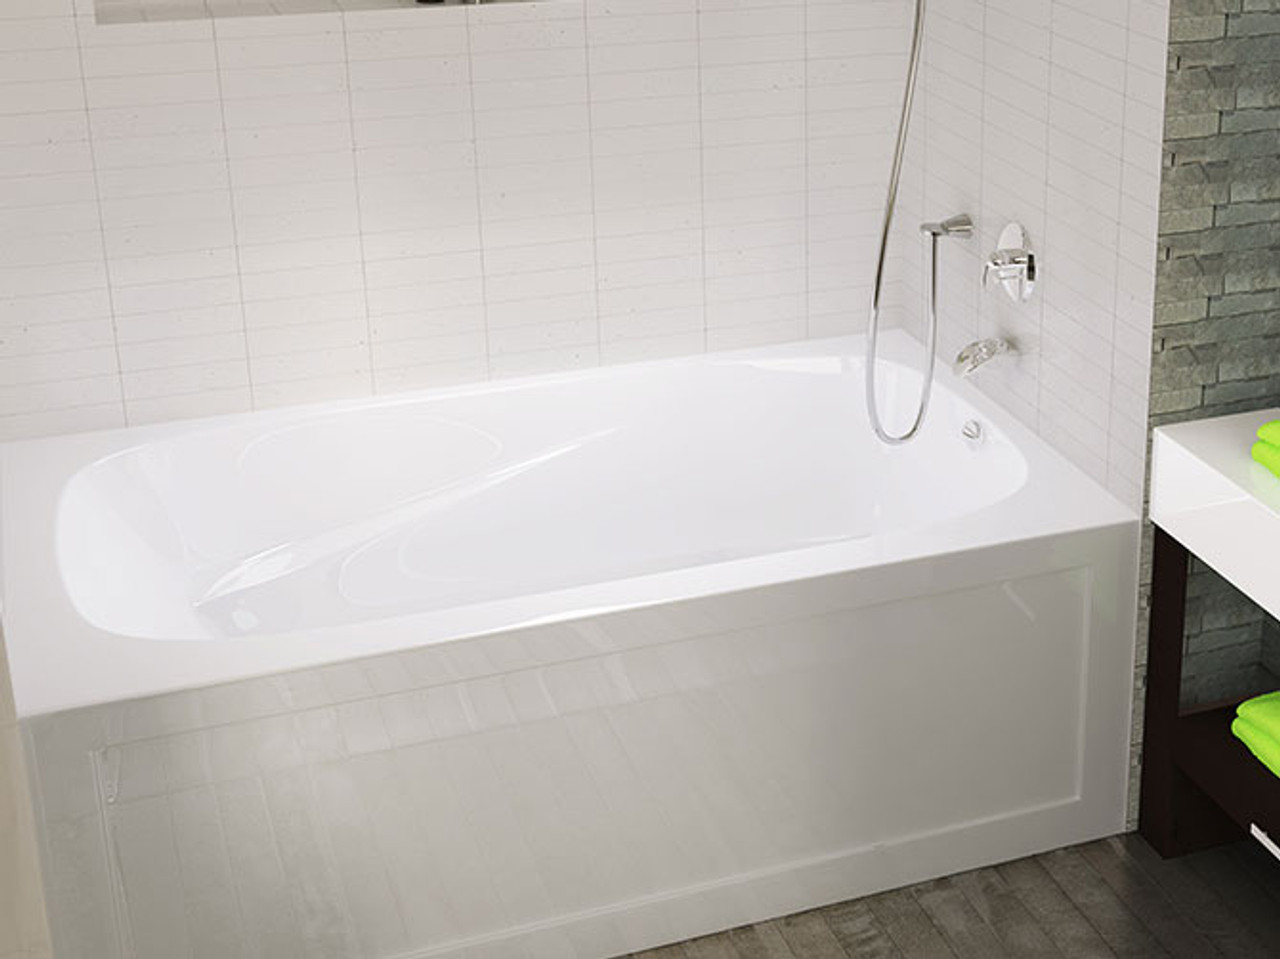 Mirolin Phoenix 60 Quot X 30 Quot Skirted Right Hand Bath Tub